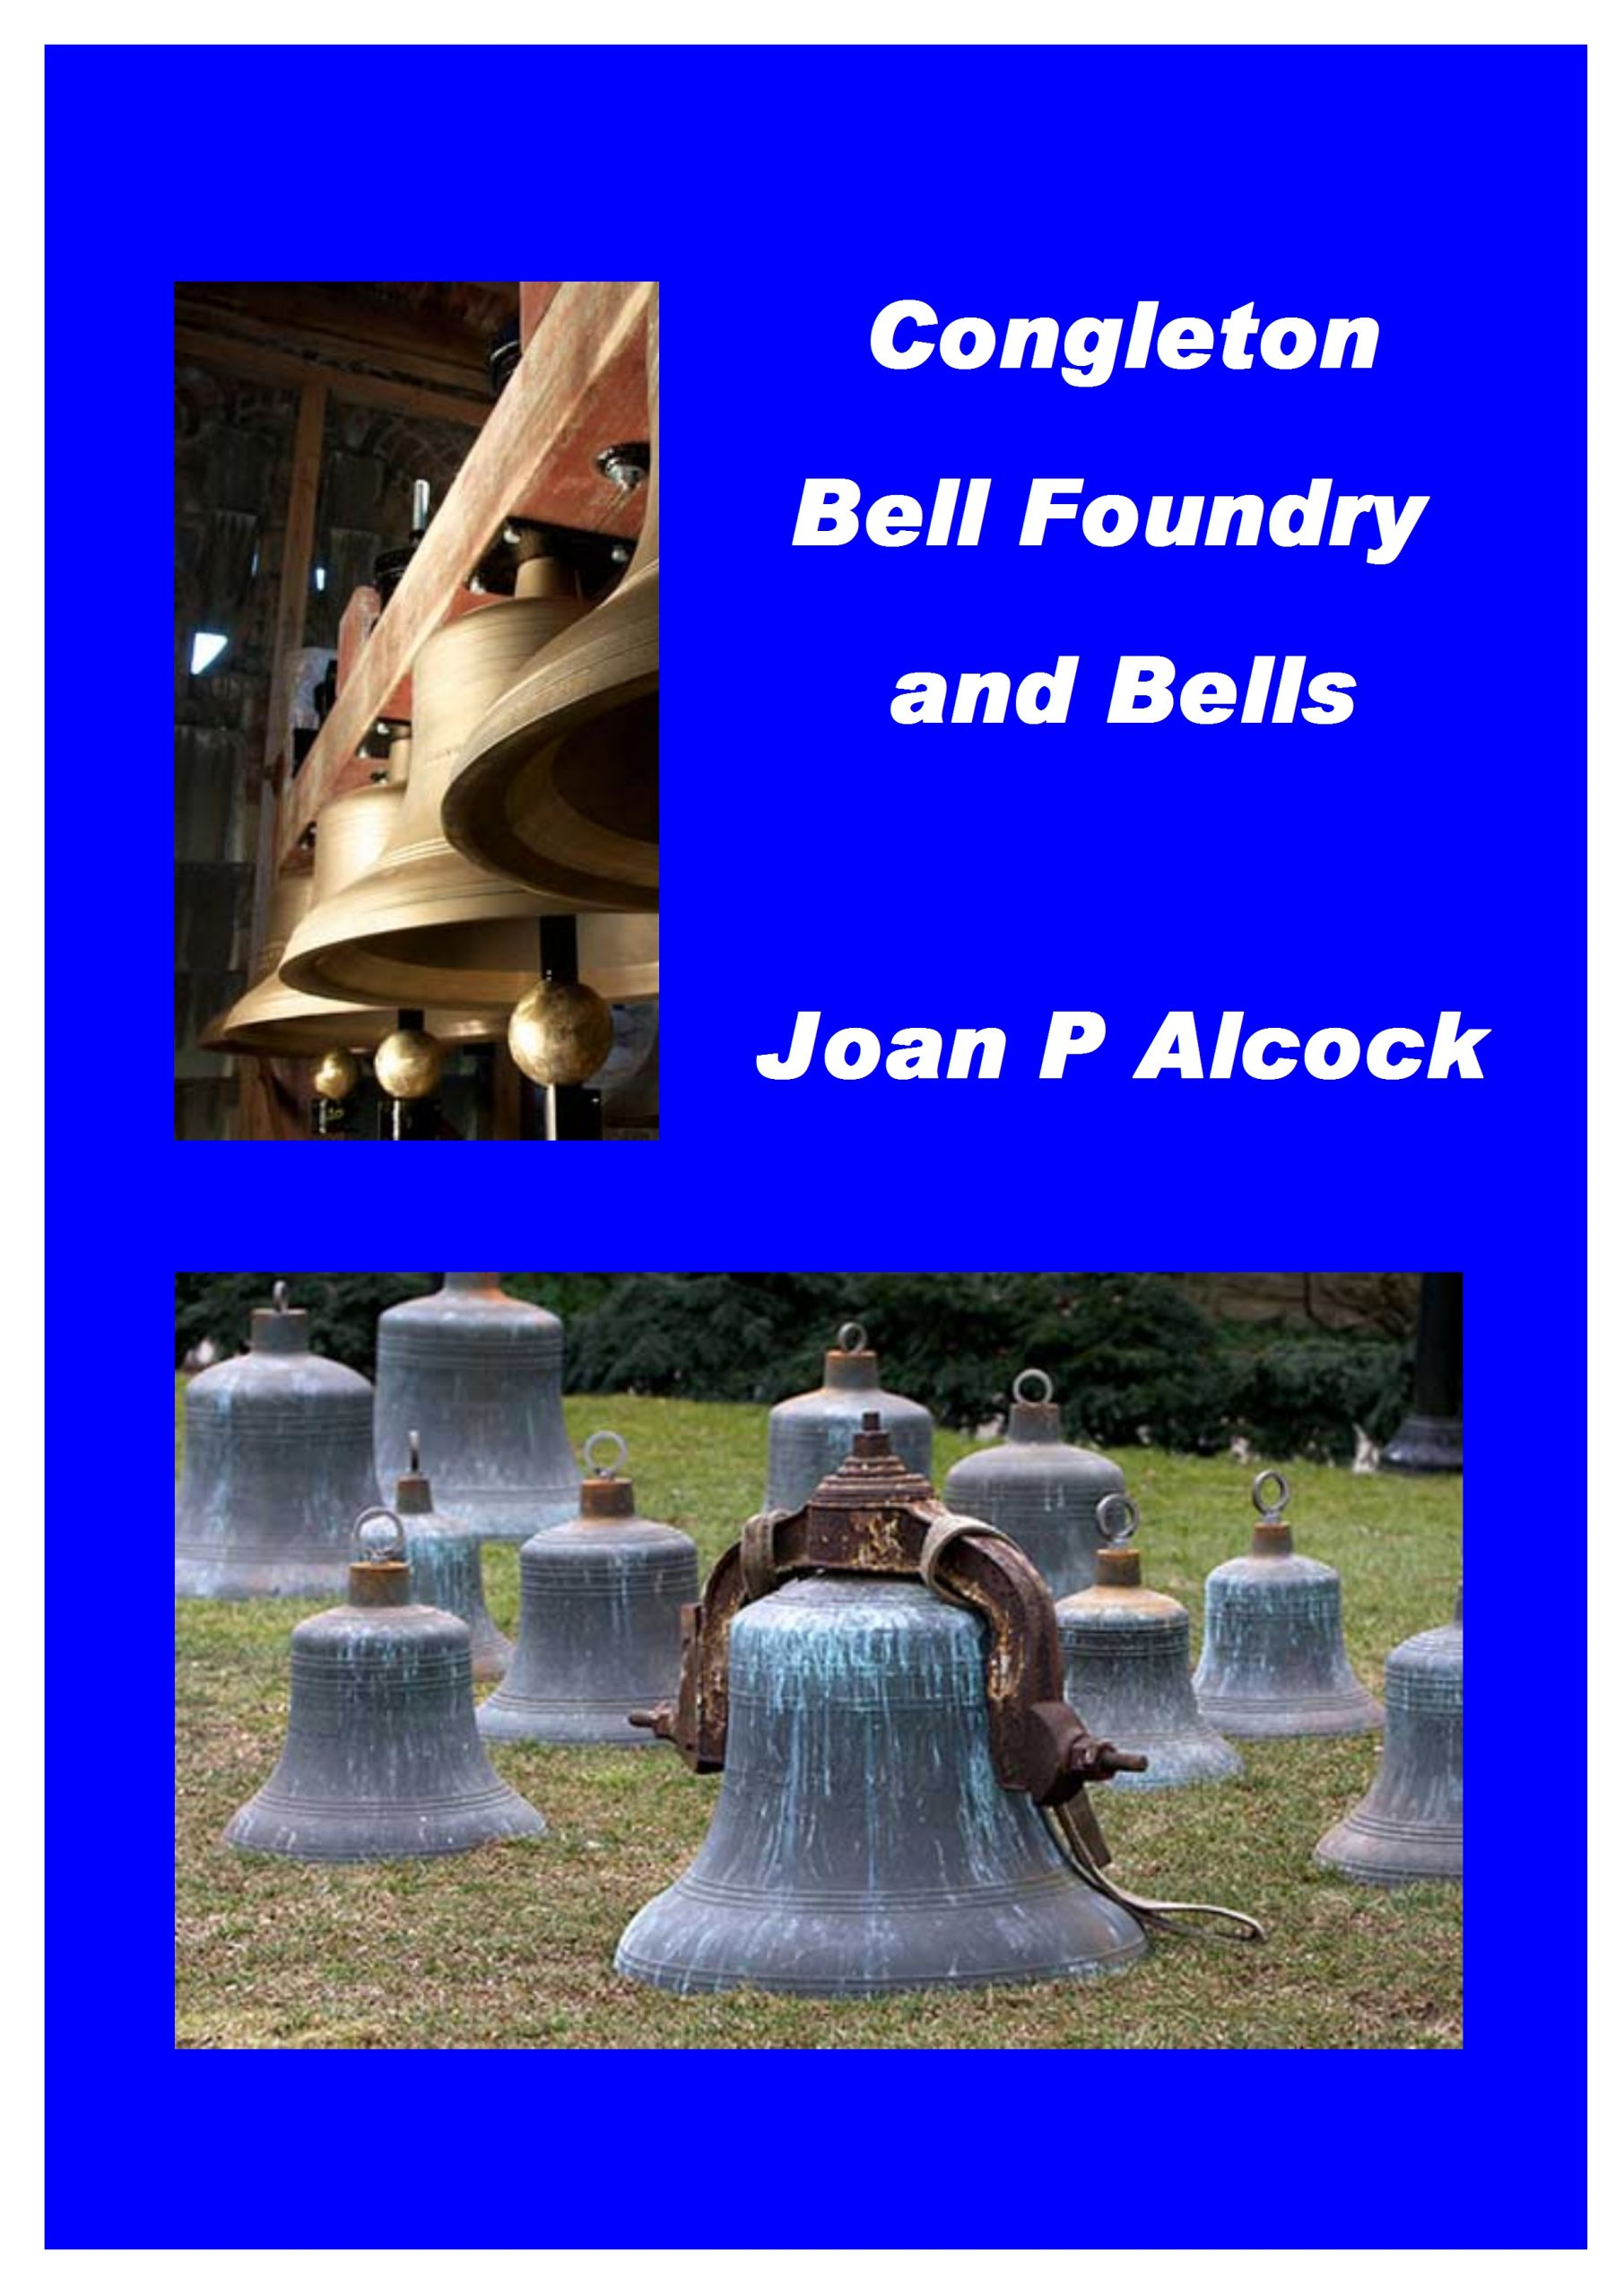 Congleton Bell Foundry and Bells